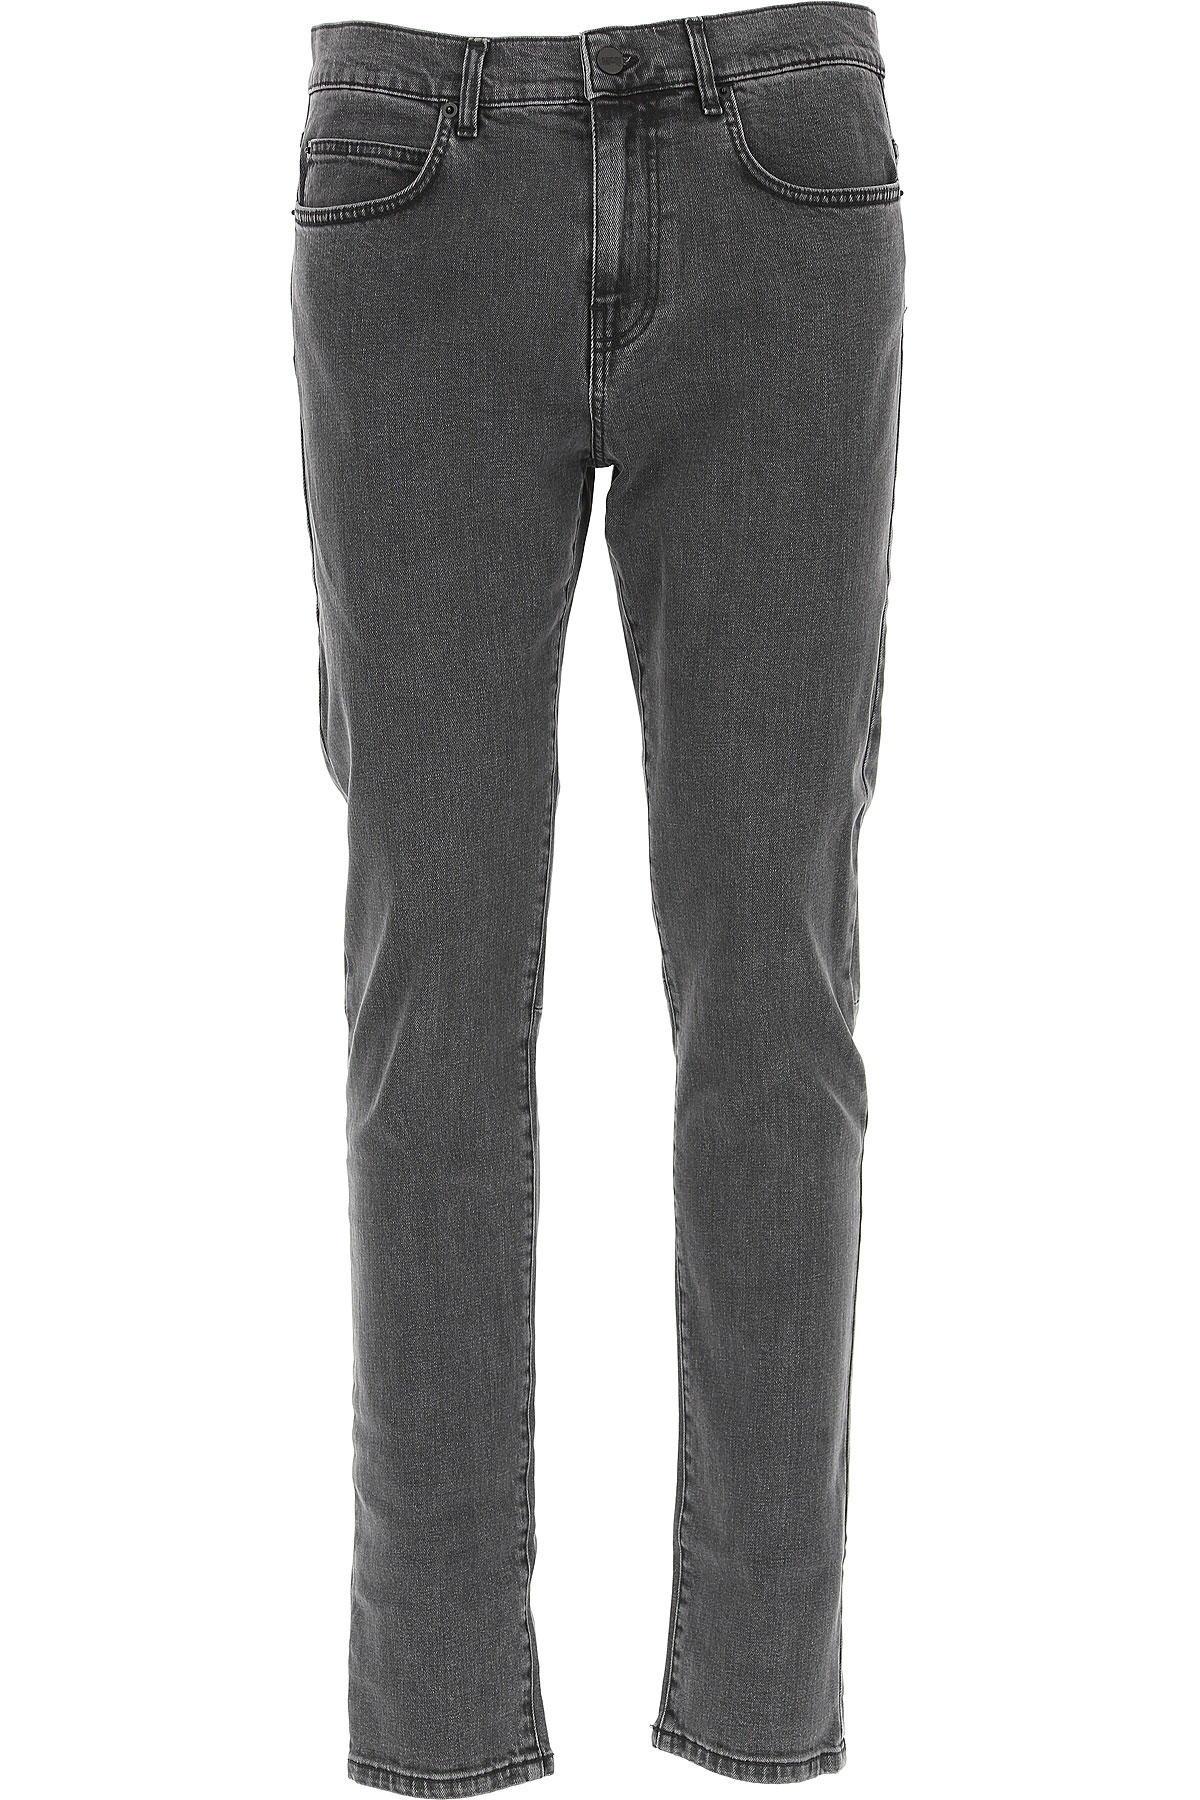 Alexander McQueen McQ Jeans On Sale in Outlet, Denim Grey, Cotton, 2019, 32 33 34